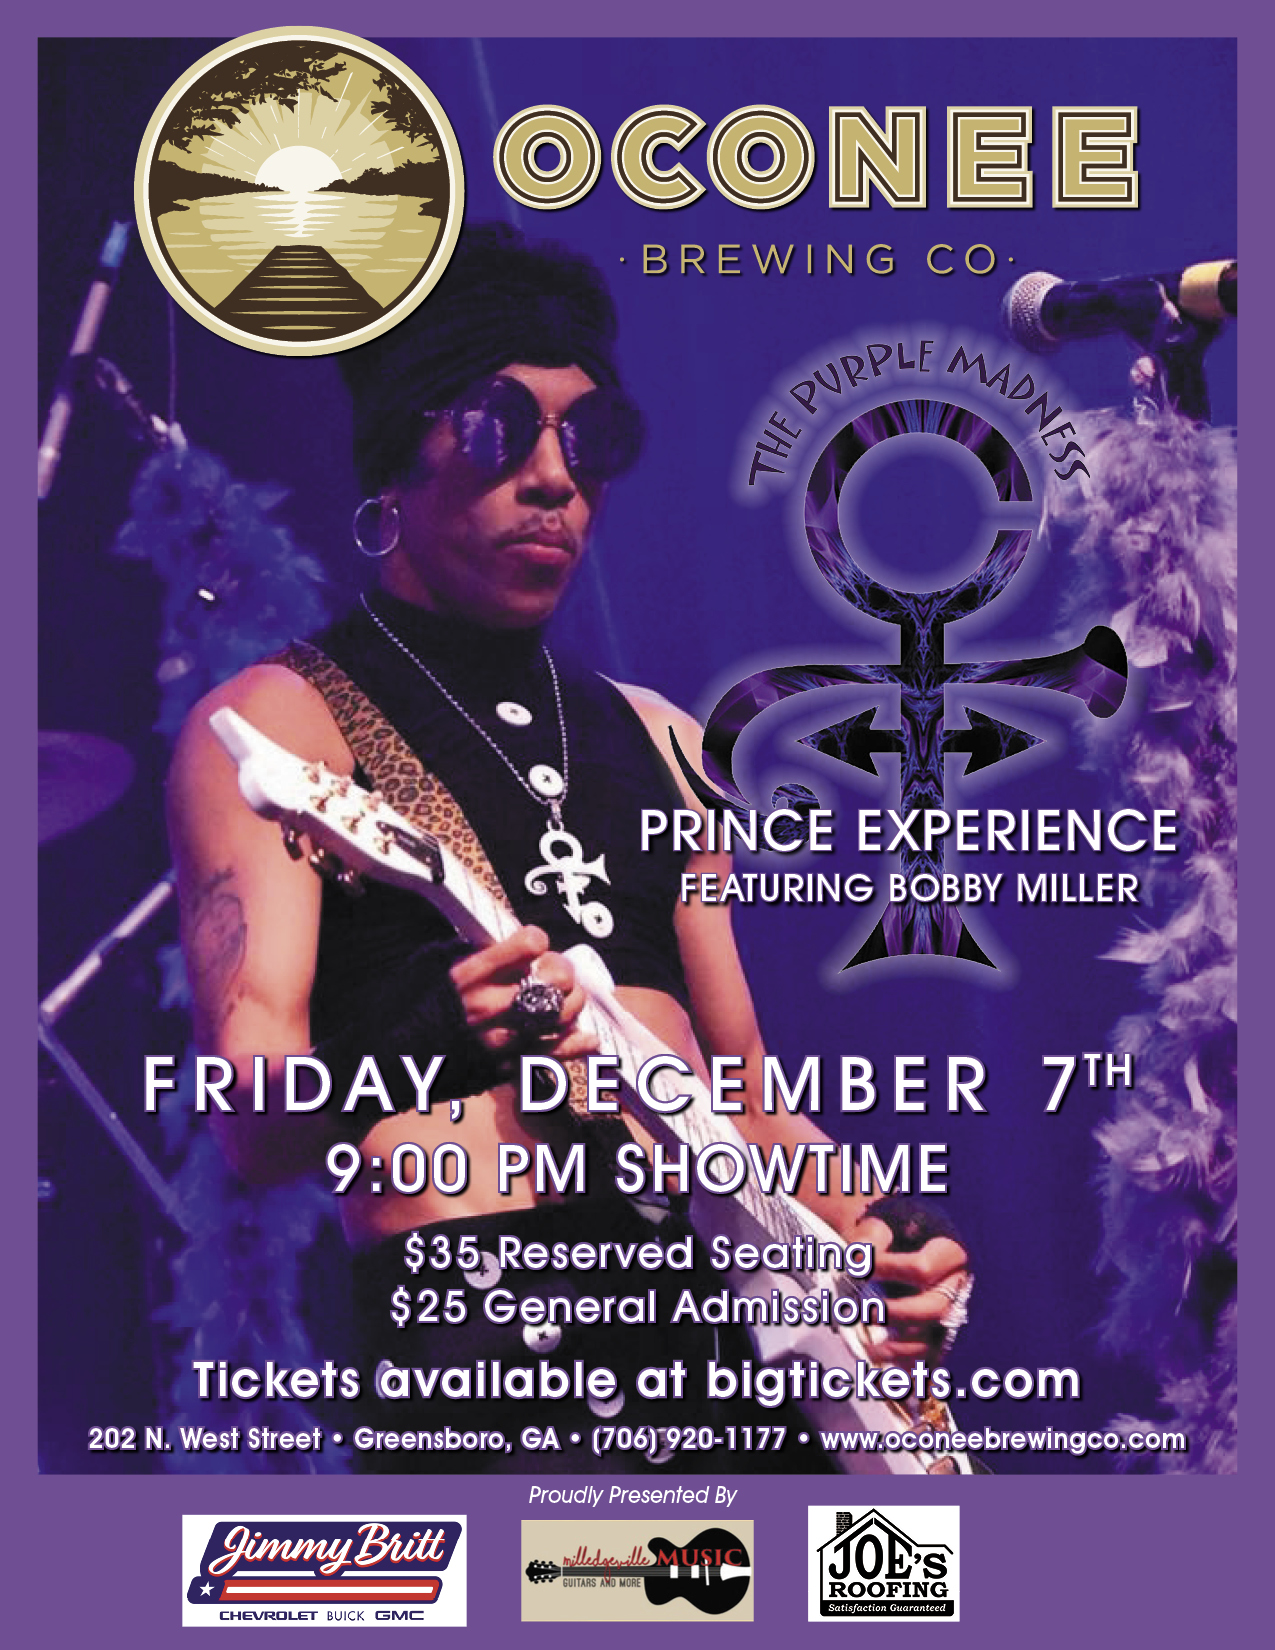 The Purple Madness Prince Experience